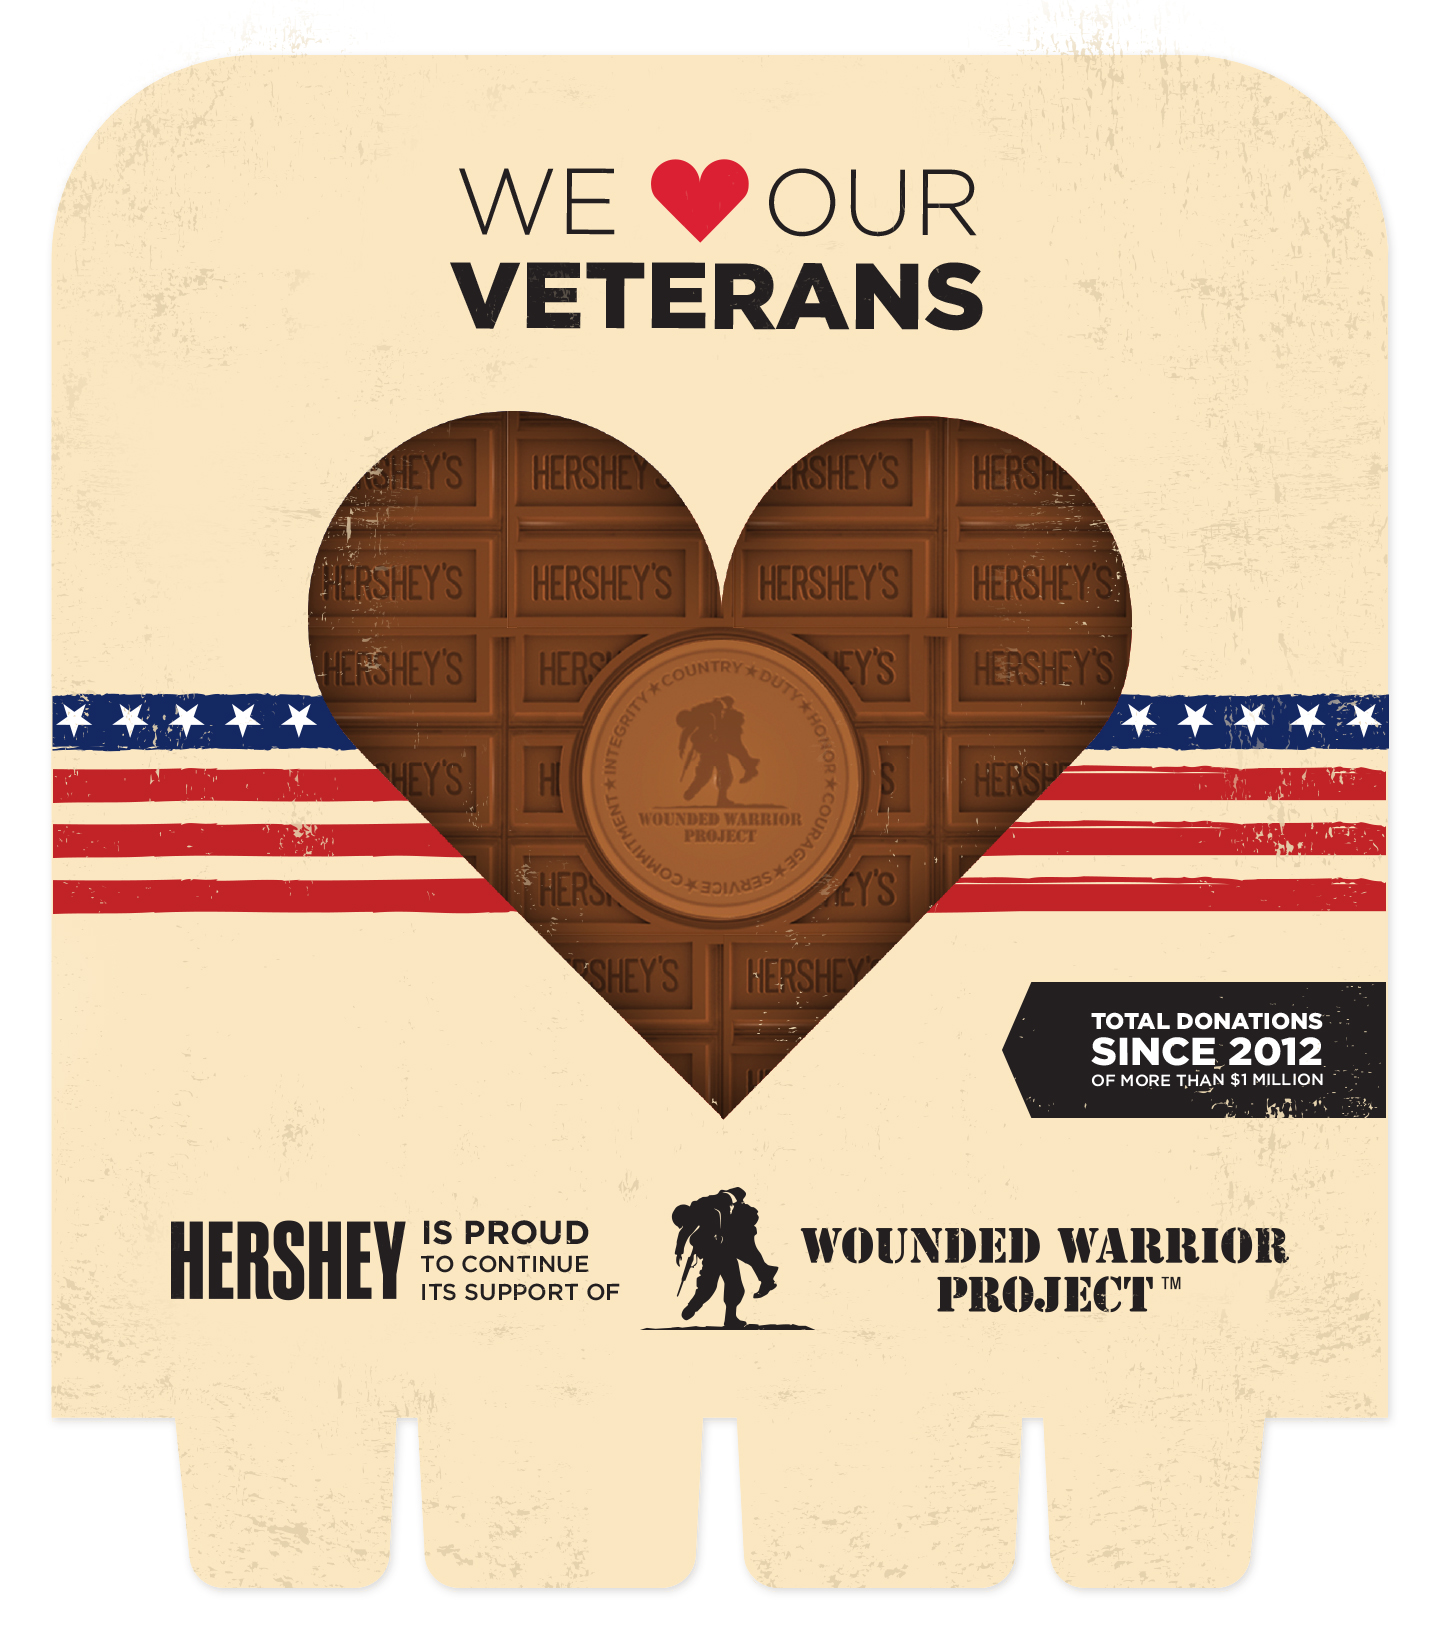 Concept for Hershey's and Wounded Warrior Project.